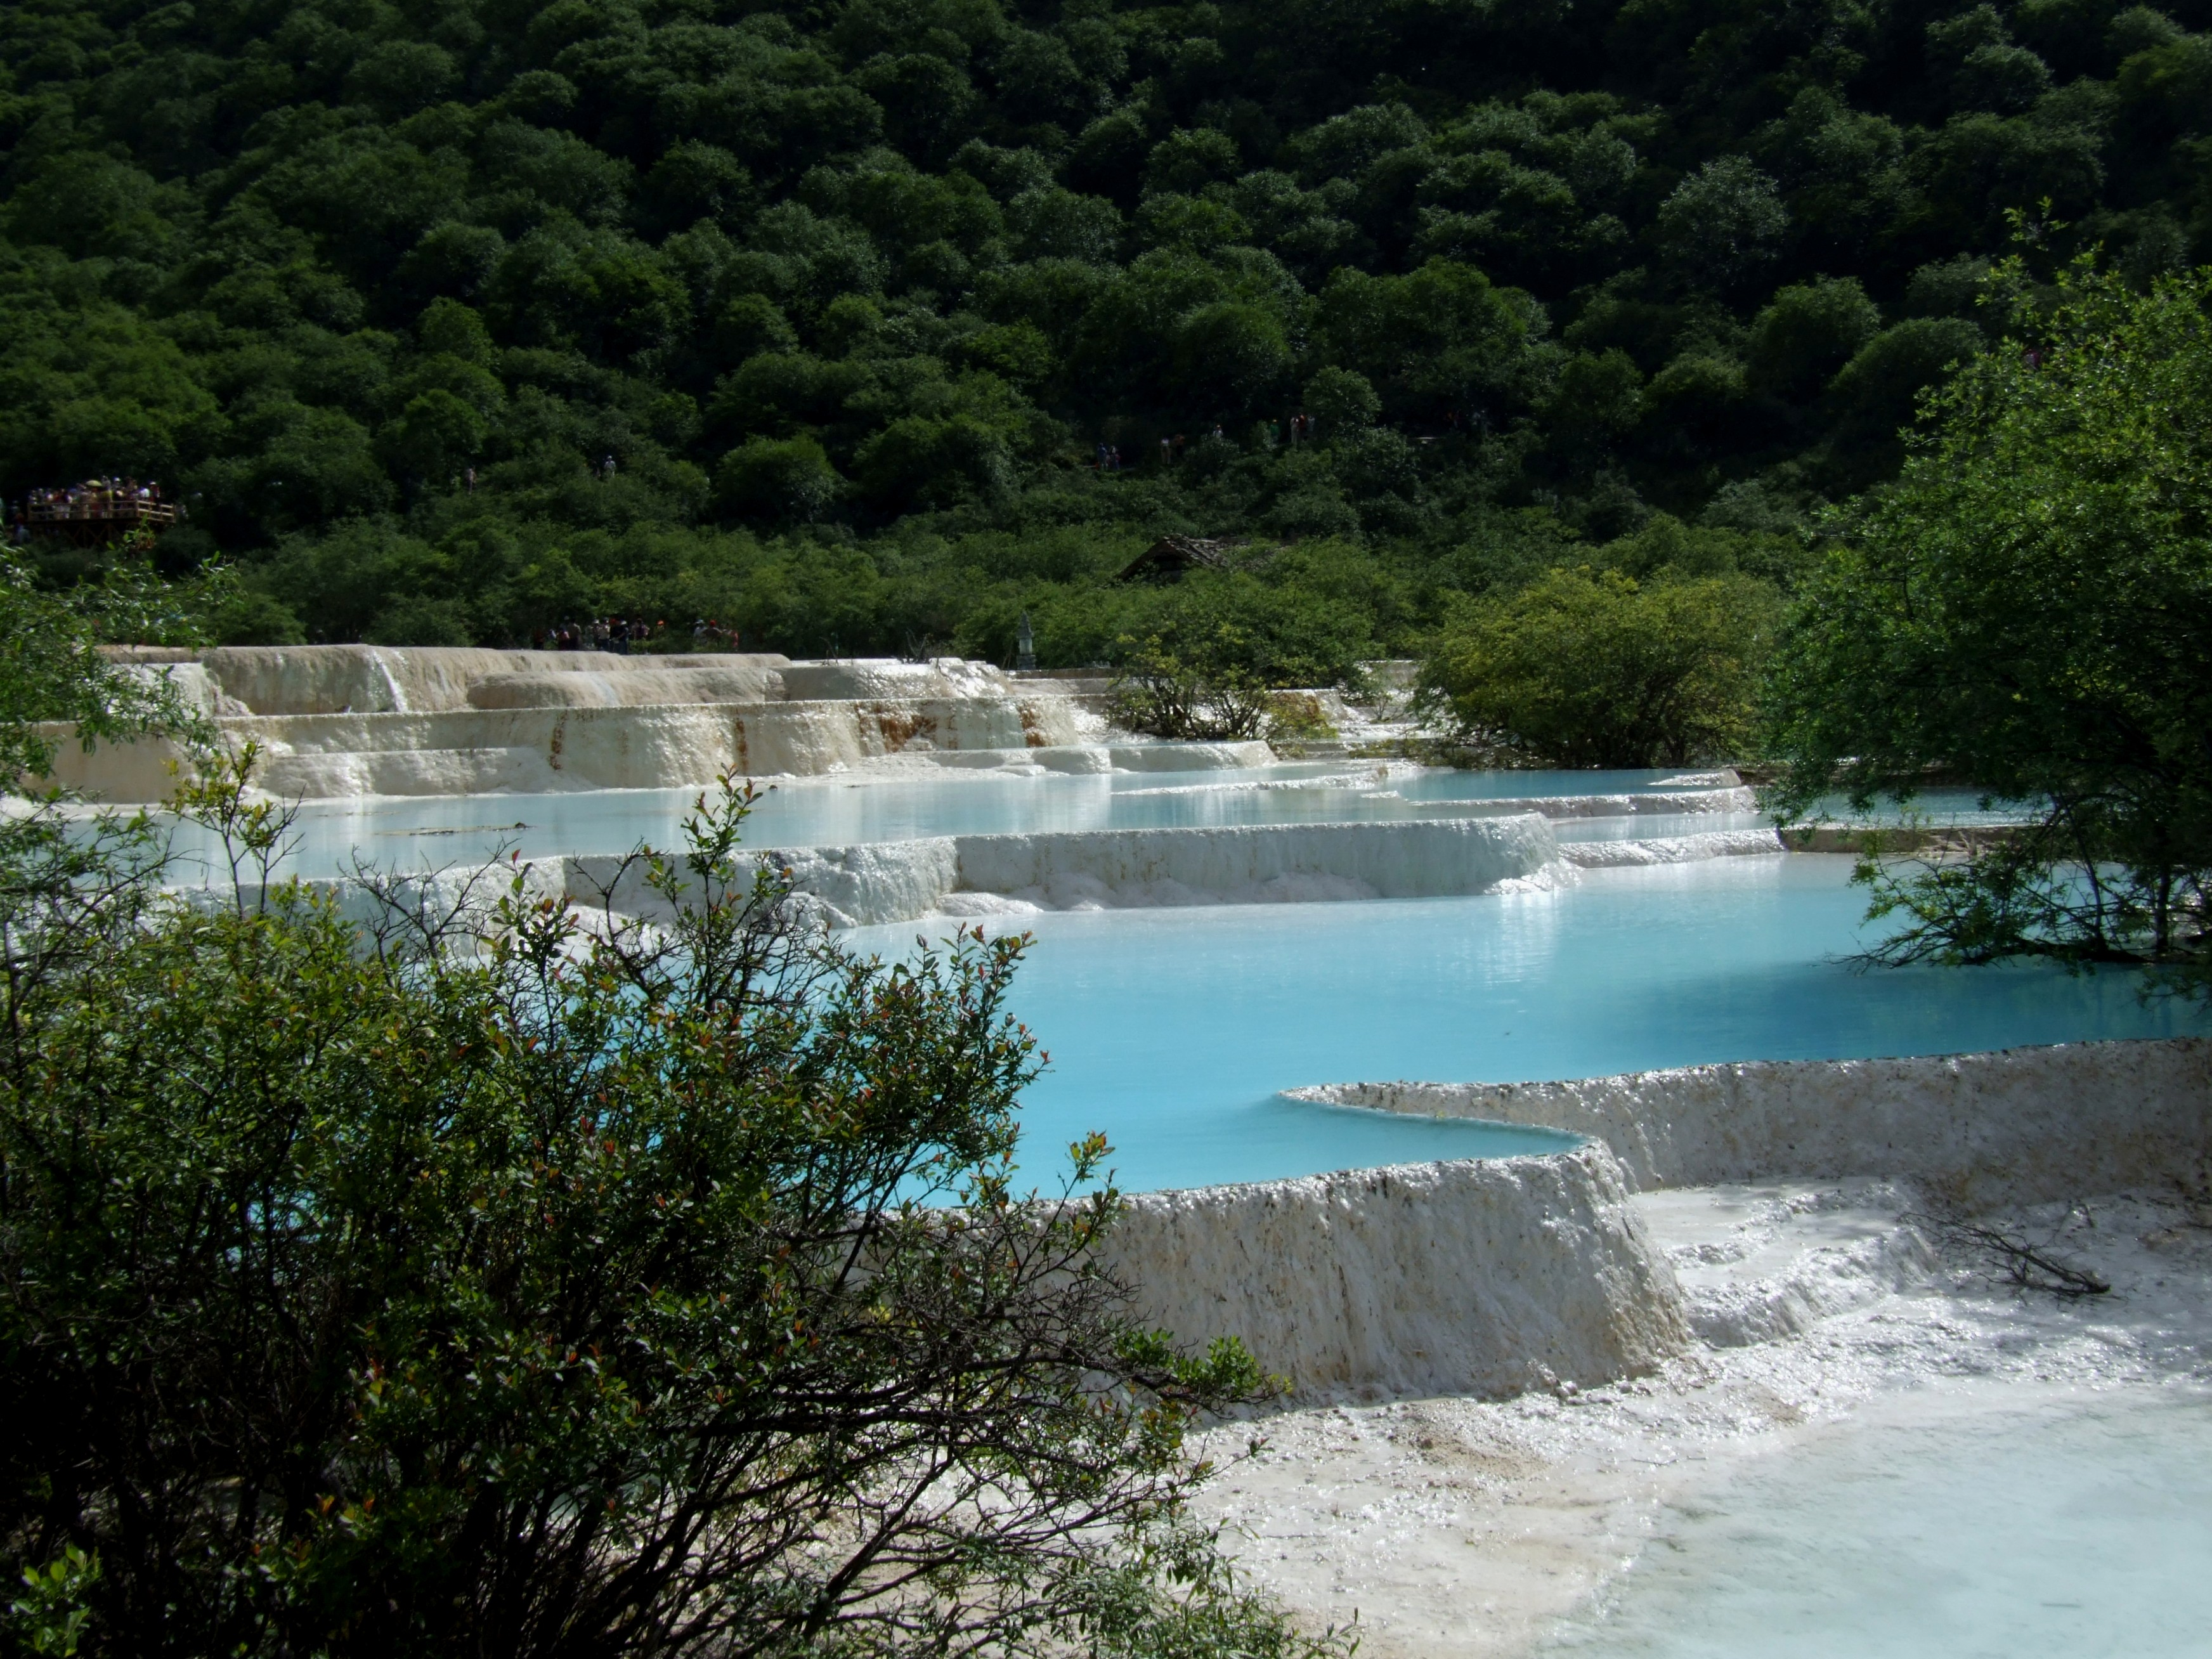 File:Huanglong-calcific-ponds.jpg - Wikimedia Commons